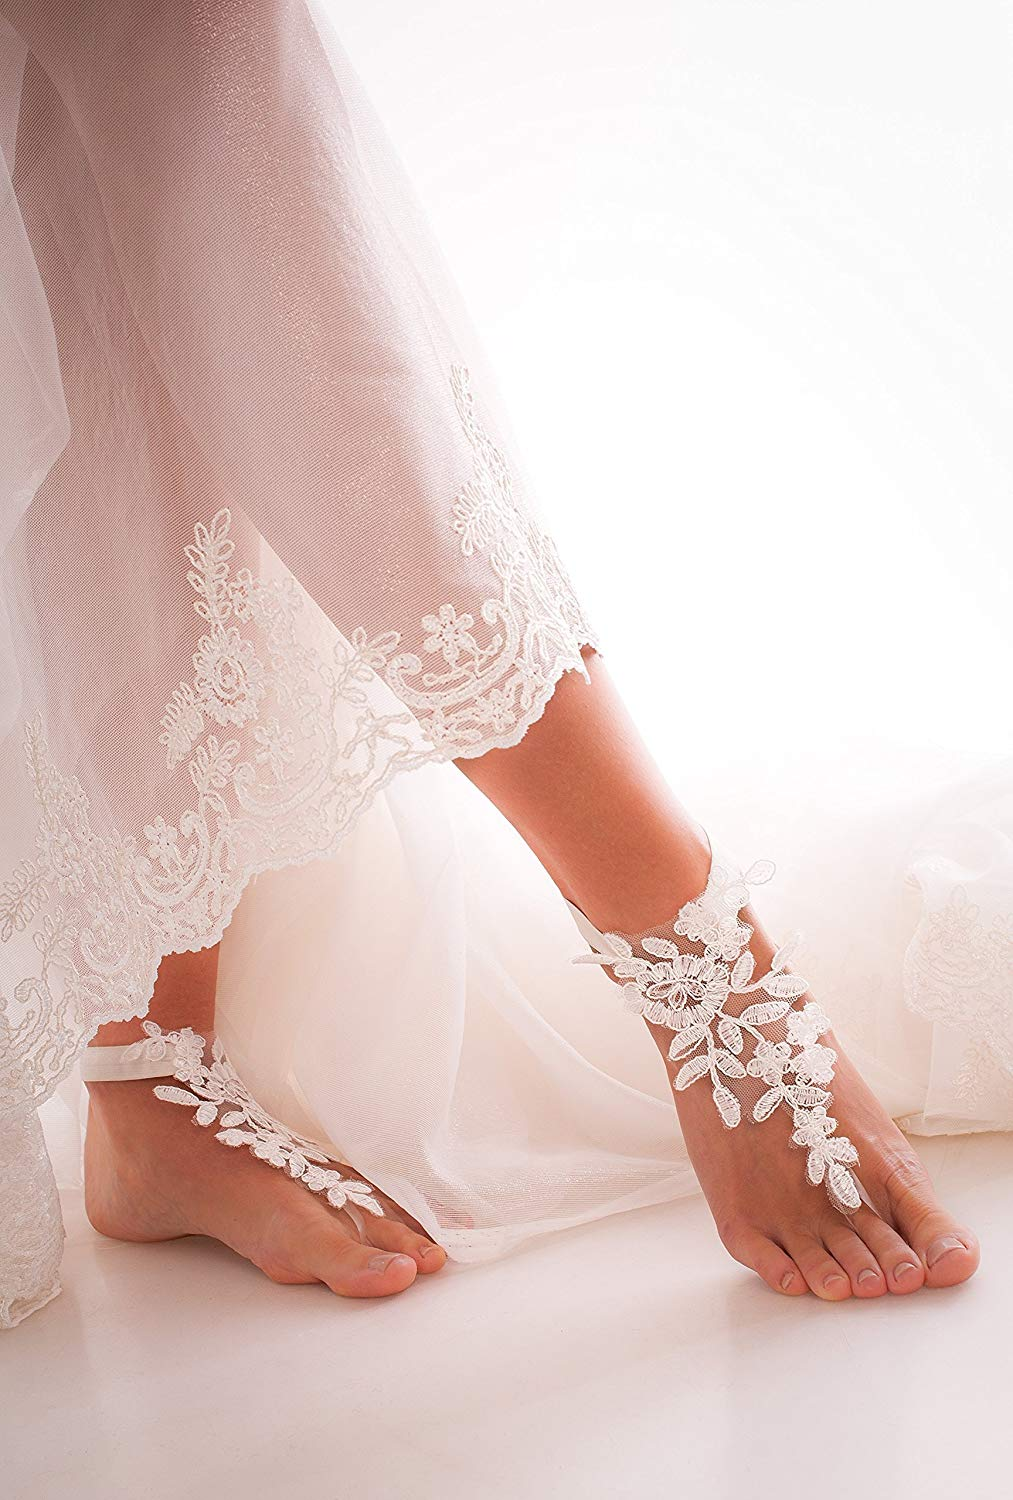 Ivory Lace Barefoot Sandals, Bridal accessory, Nude shoes, Foot thongs, French Lace, Sexy, Beach wedding Anklet, bottomless shoes